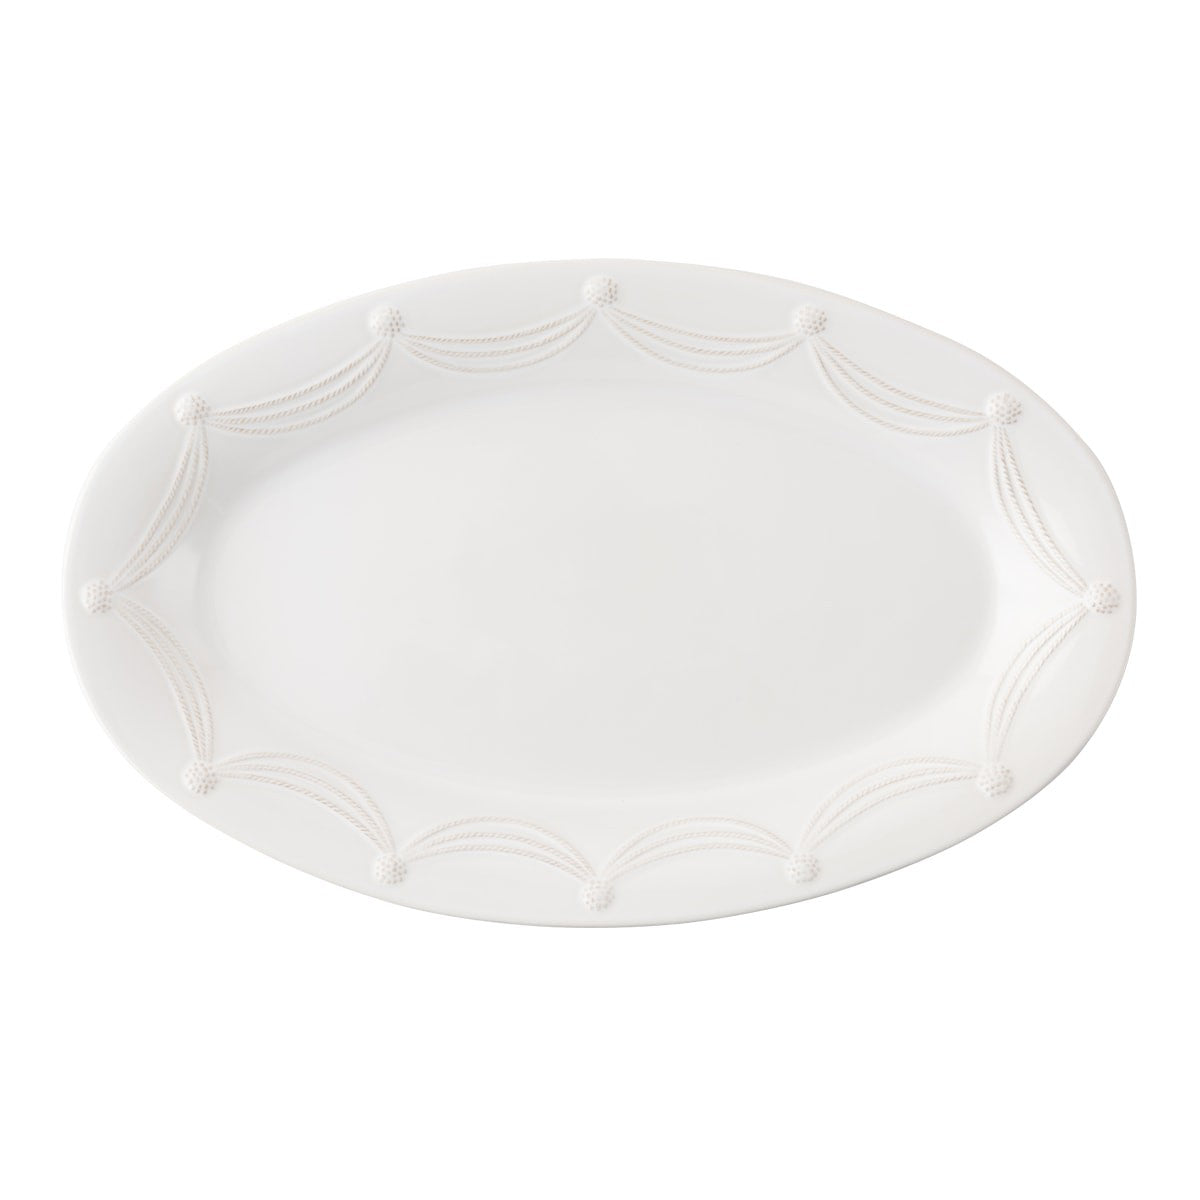 "Juliska - Berry & Thread Whitewash 22.5"" Oval Platter"